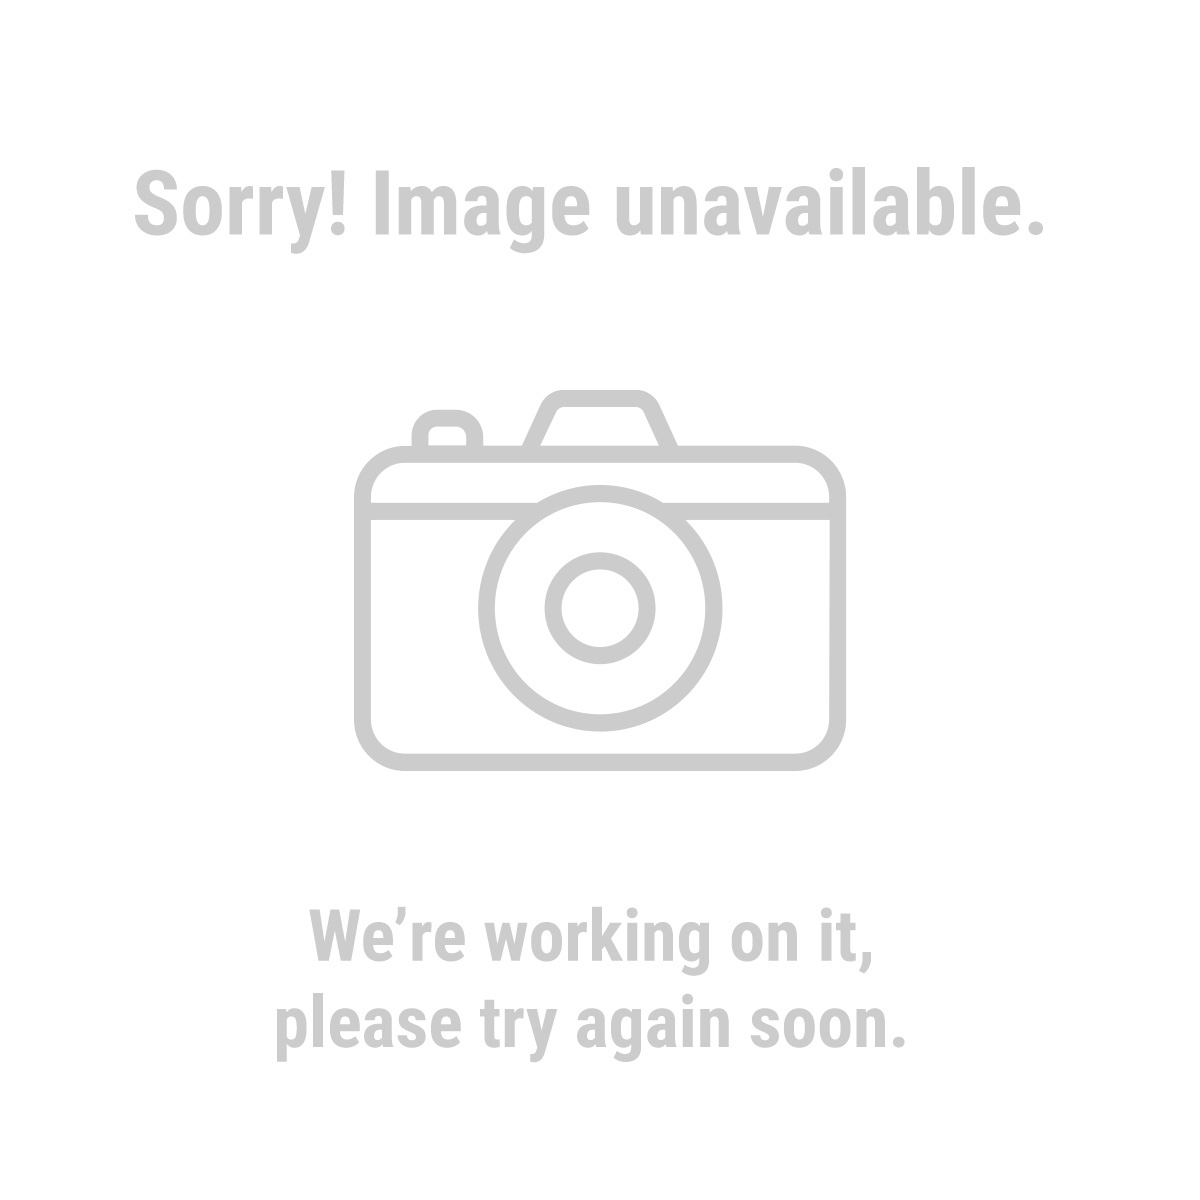 Predator Generators 62523 2000 Peak/1600 Running Watts, 2.8 HP  (79.7cc) Portable Inverter Generator CARB